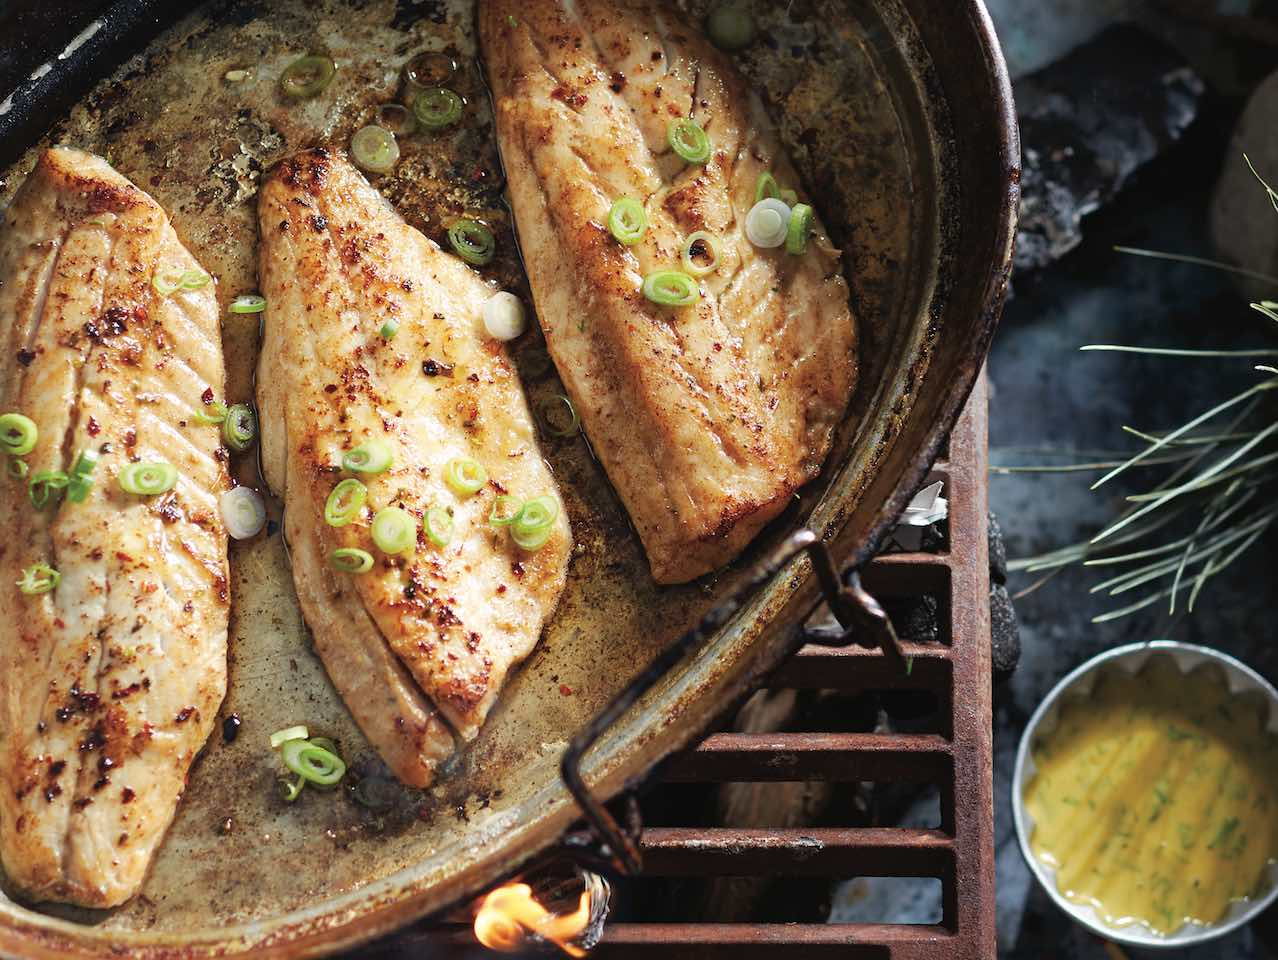 5 Easy Glazes, Rubs And Toppings To Dress Up Your Fish (And Make Weeknight Meals A Breeze)